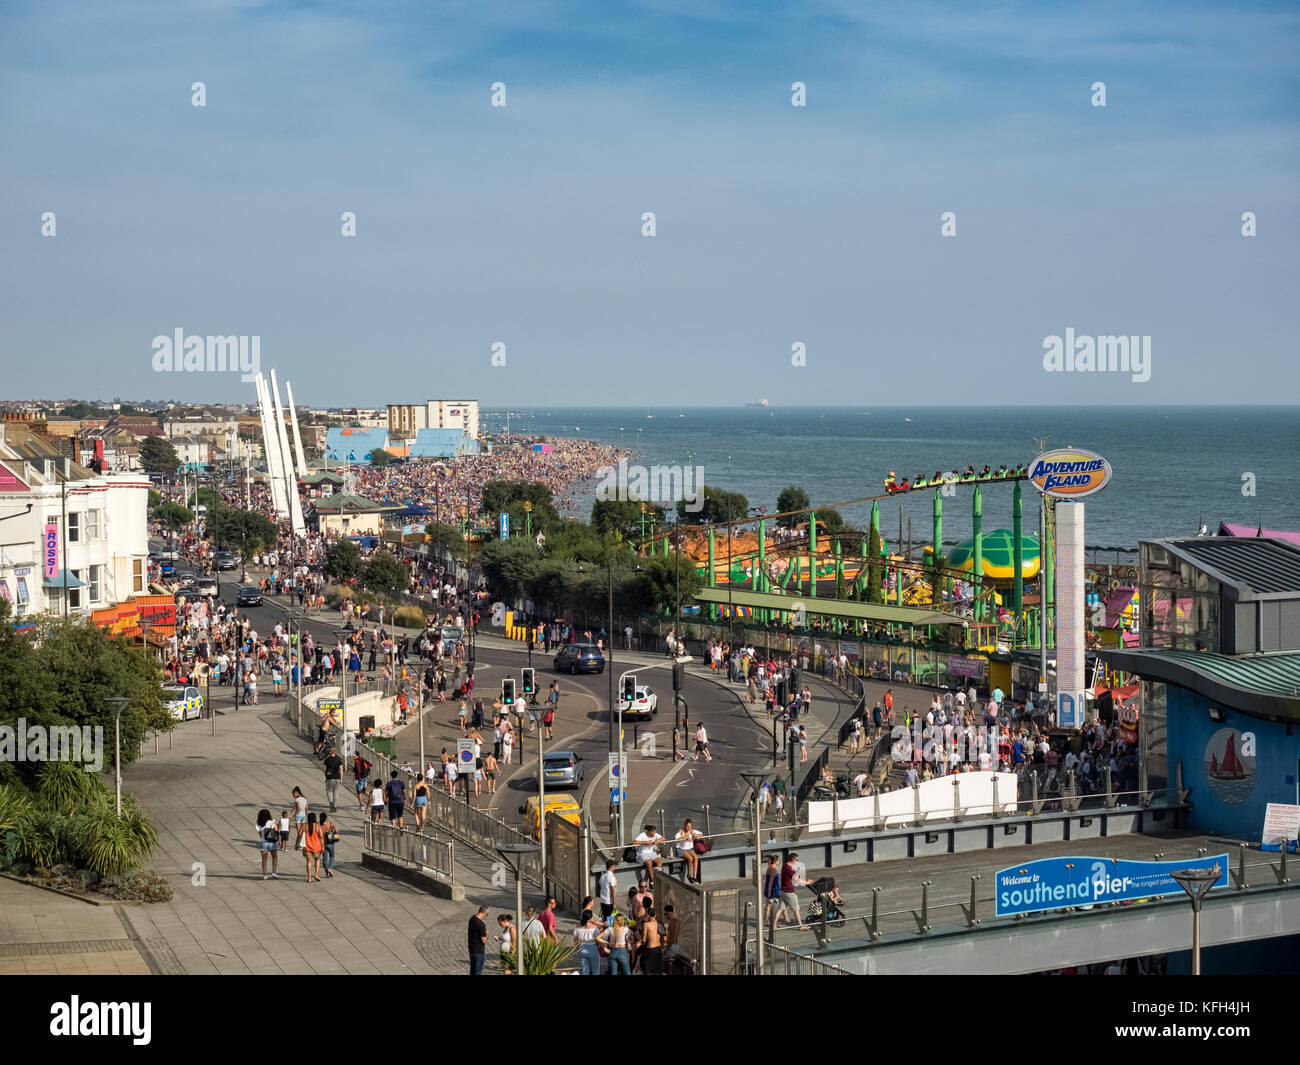 SOUTHEND-ON-SEA, ESSEX:  View along Southend Seafront Promenade on a busy Bank Holiday Weekend - Stock Image